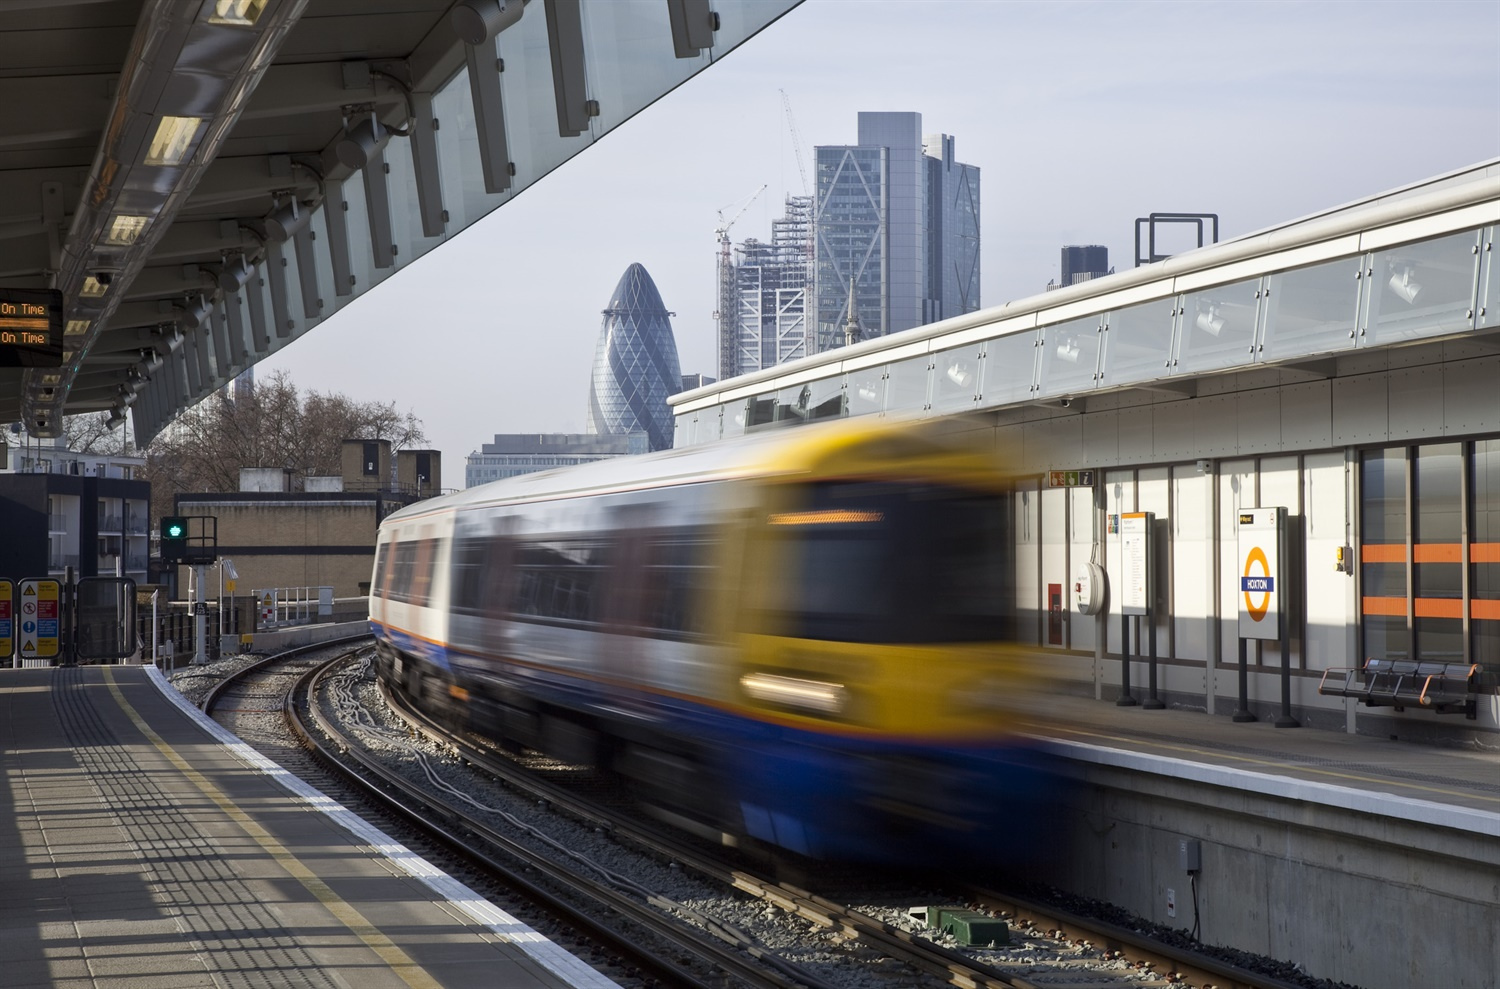 Arriva to land £1.5bn contract to deliver London Overground services